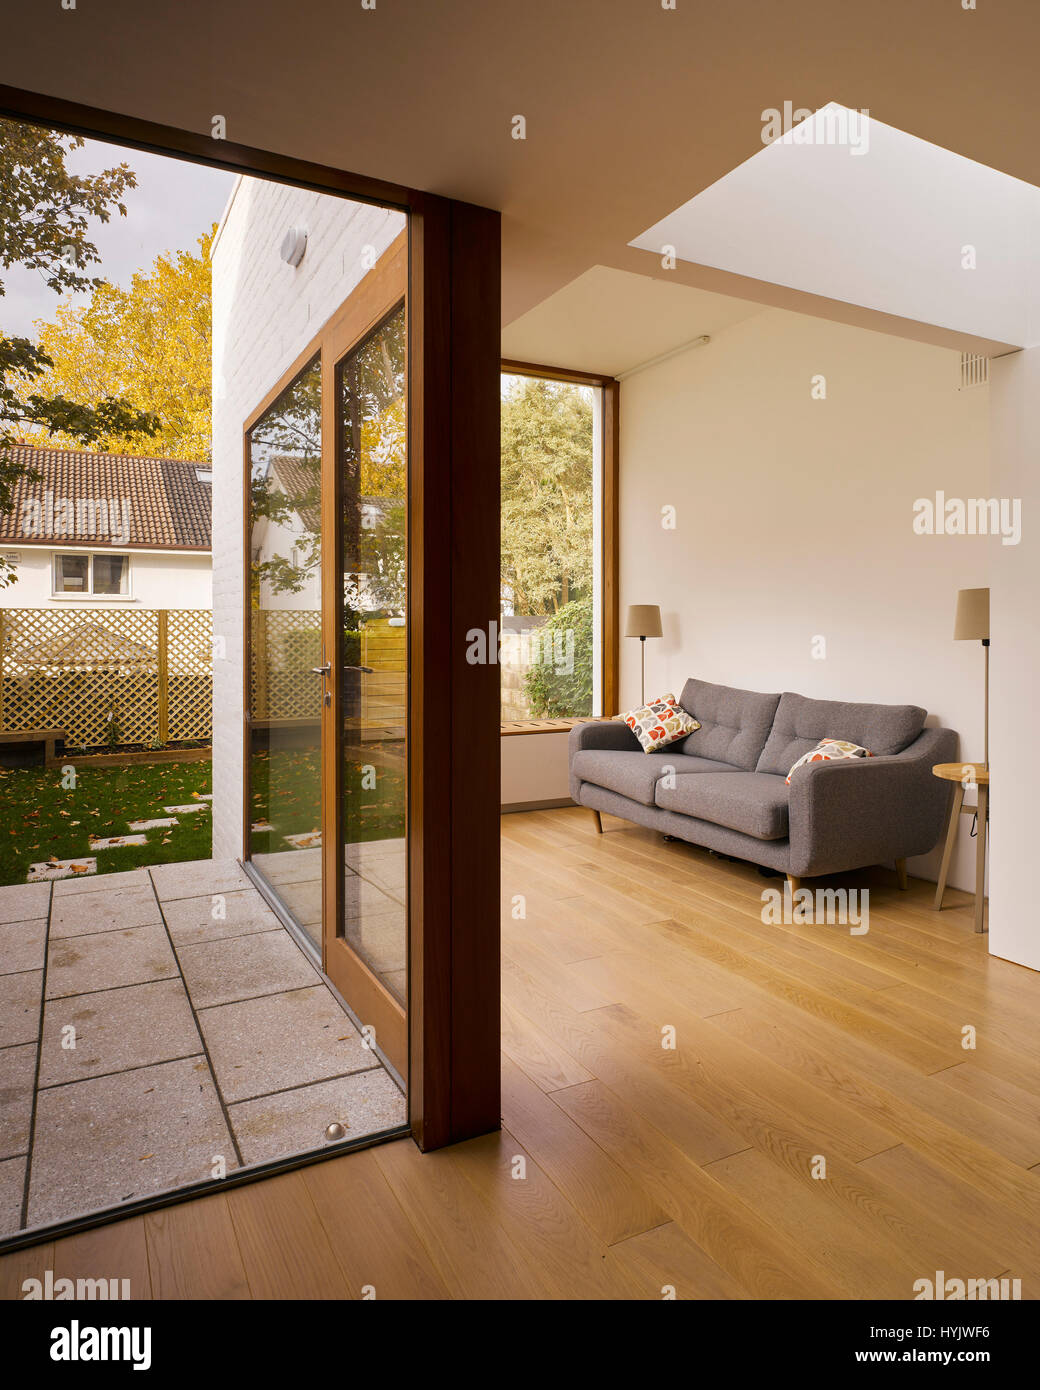 Interior view of living area showing glass doors to exterior. Extension to House, Stillorgan, Dublin, Ireland. Architect: - Stock Image